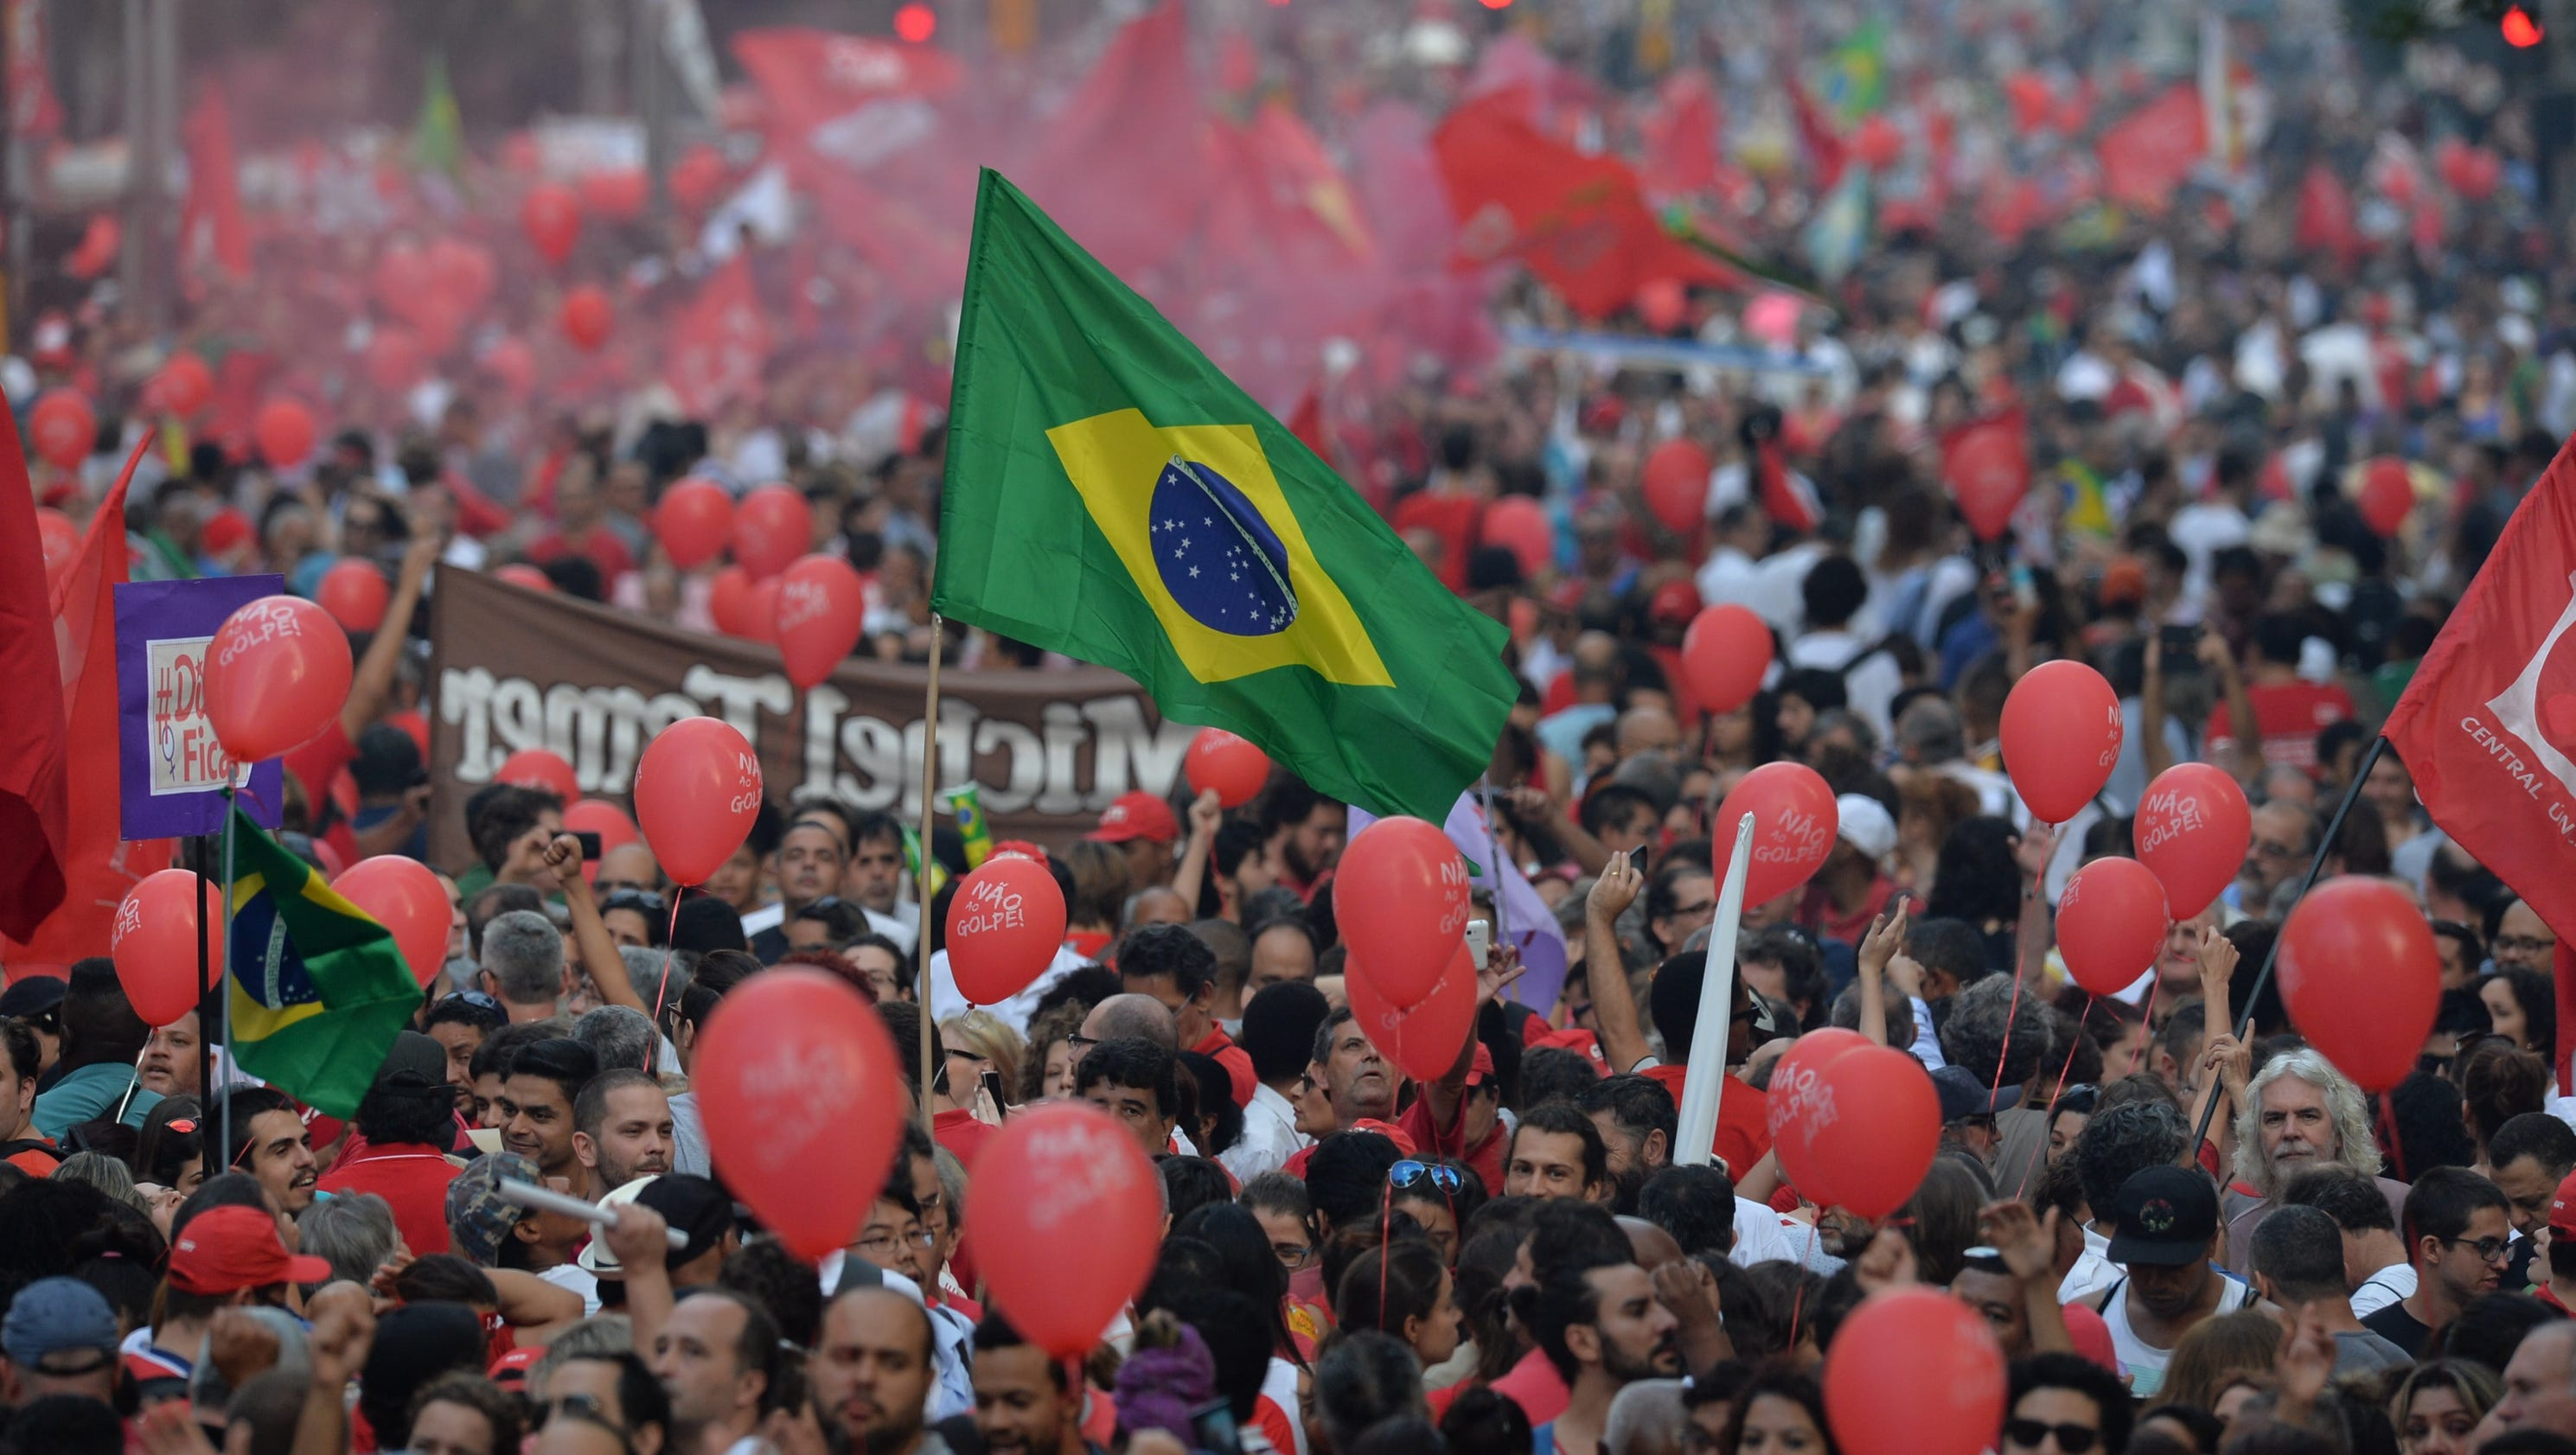 growing protests in brazil Brazil awoke friday to city centers still smoldering after a night that shocked the nation: 1 million protesters took to the streets in scores of cities, with.